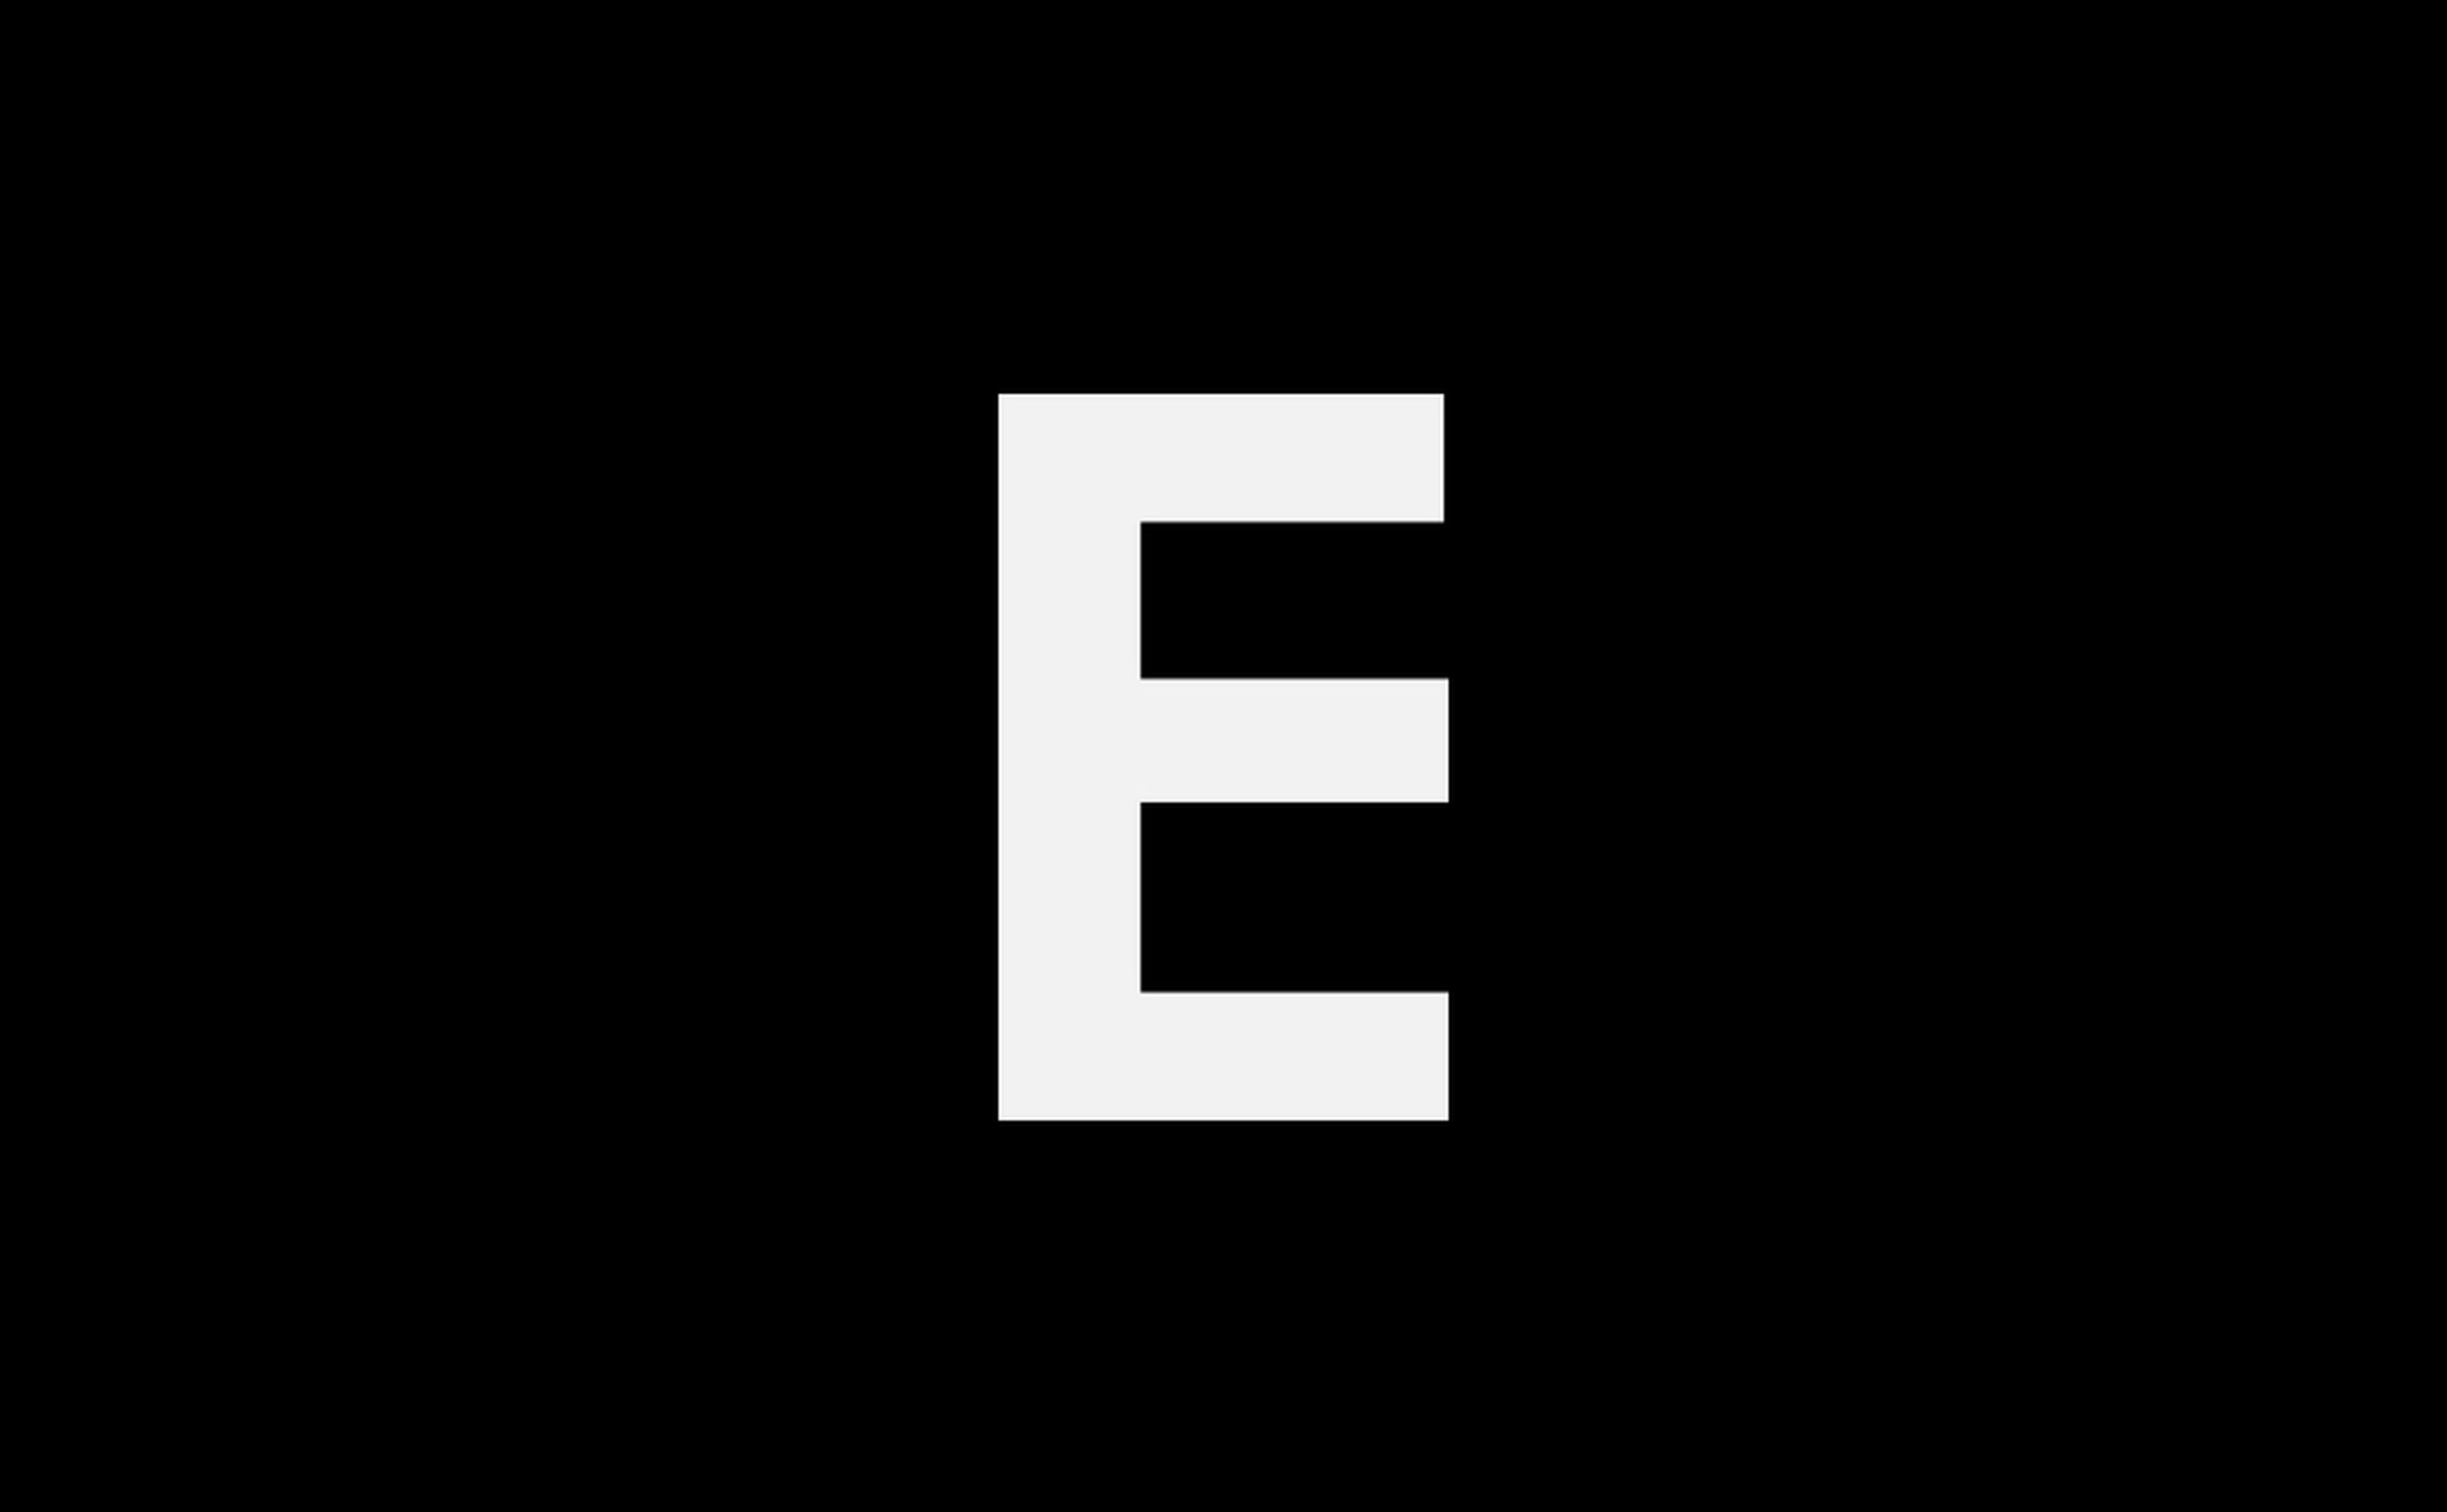 ILLUMINATED ROAD SIGN BY TREES AND STREET AT NIGHT